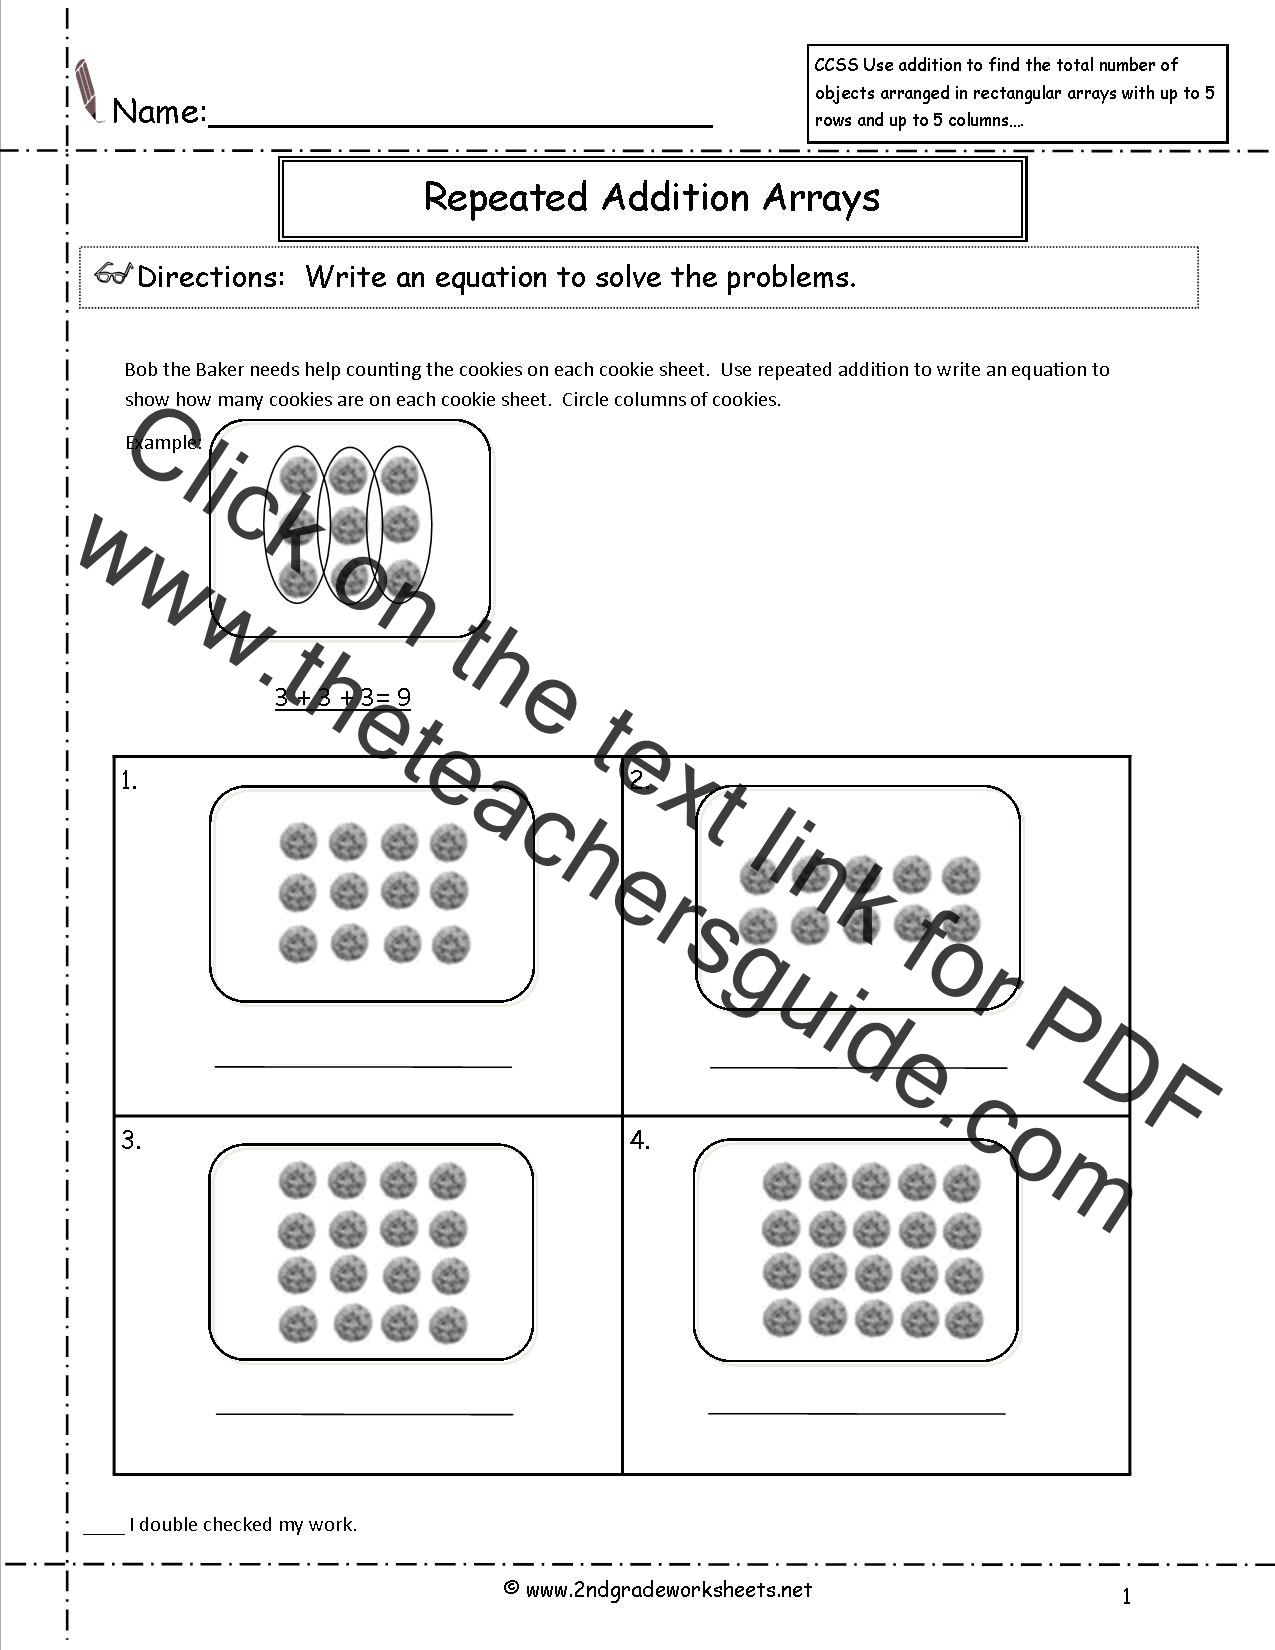 Worksheets 5th Grade Math Worksheets Common Core ccss 2 oa 4 worksheets repeated addition arrays common core